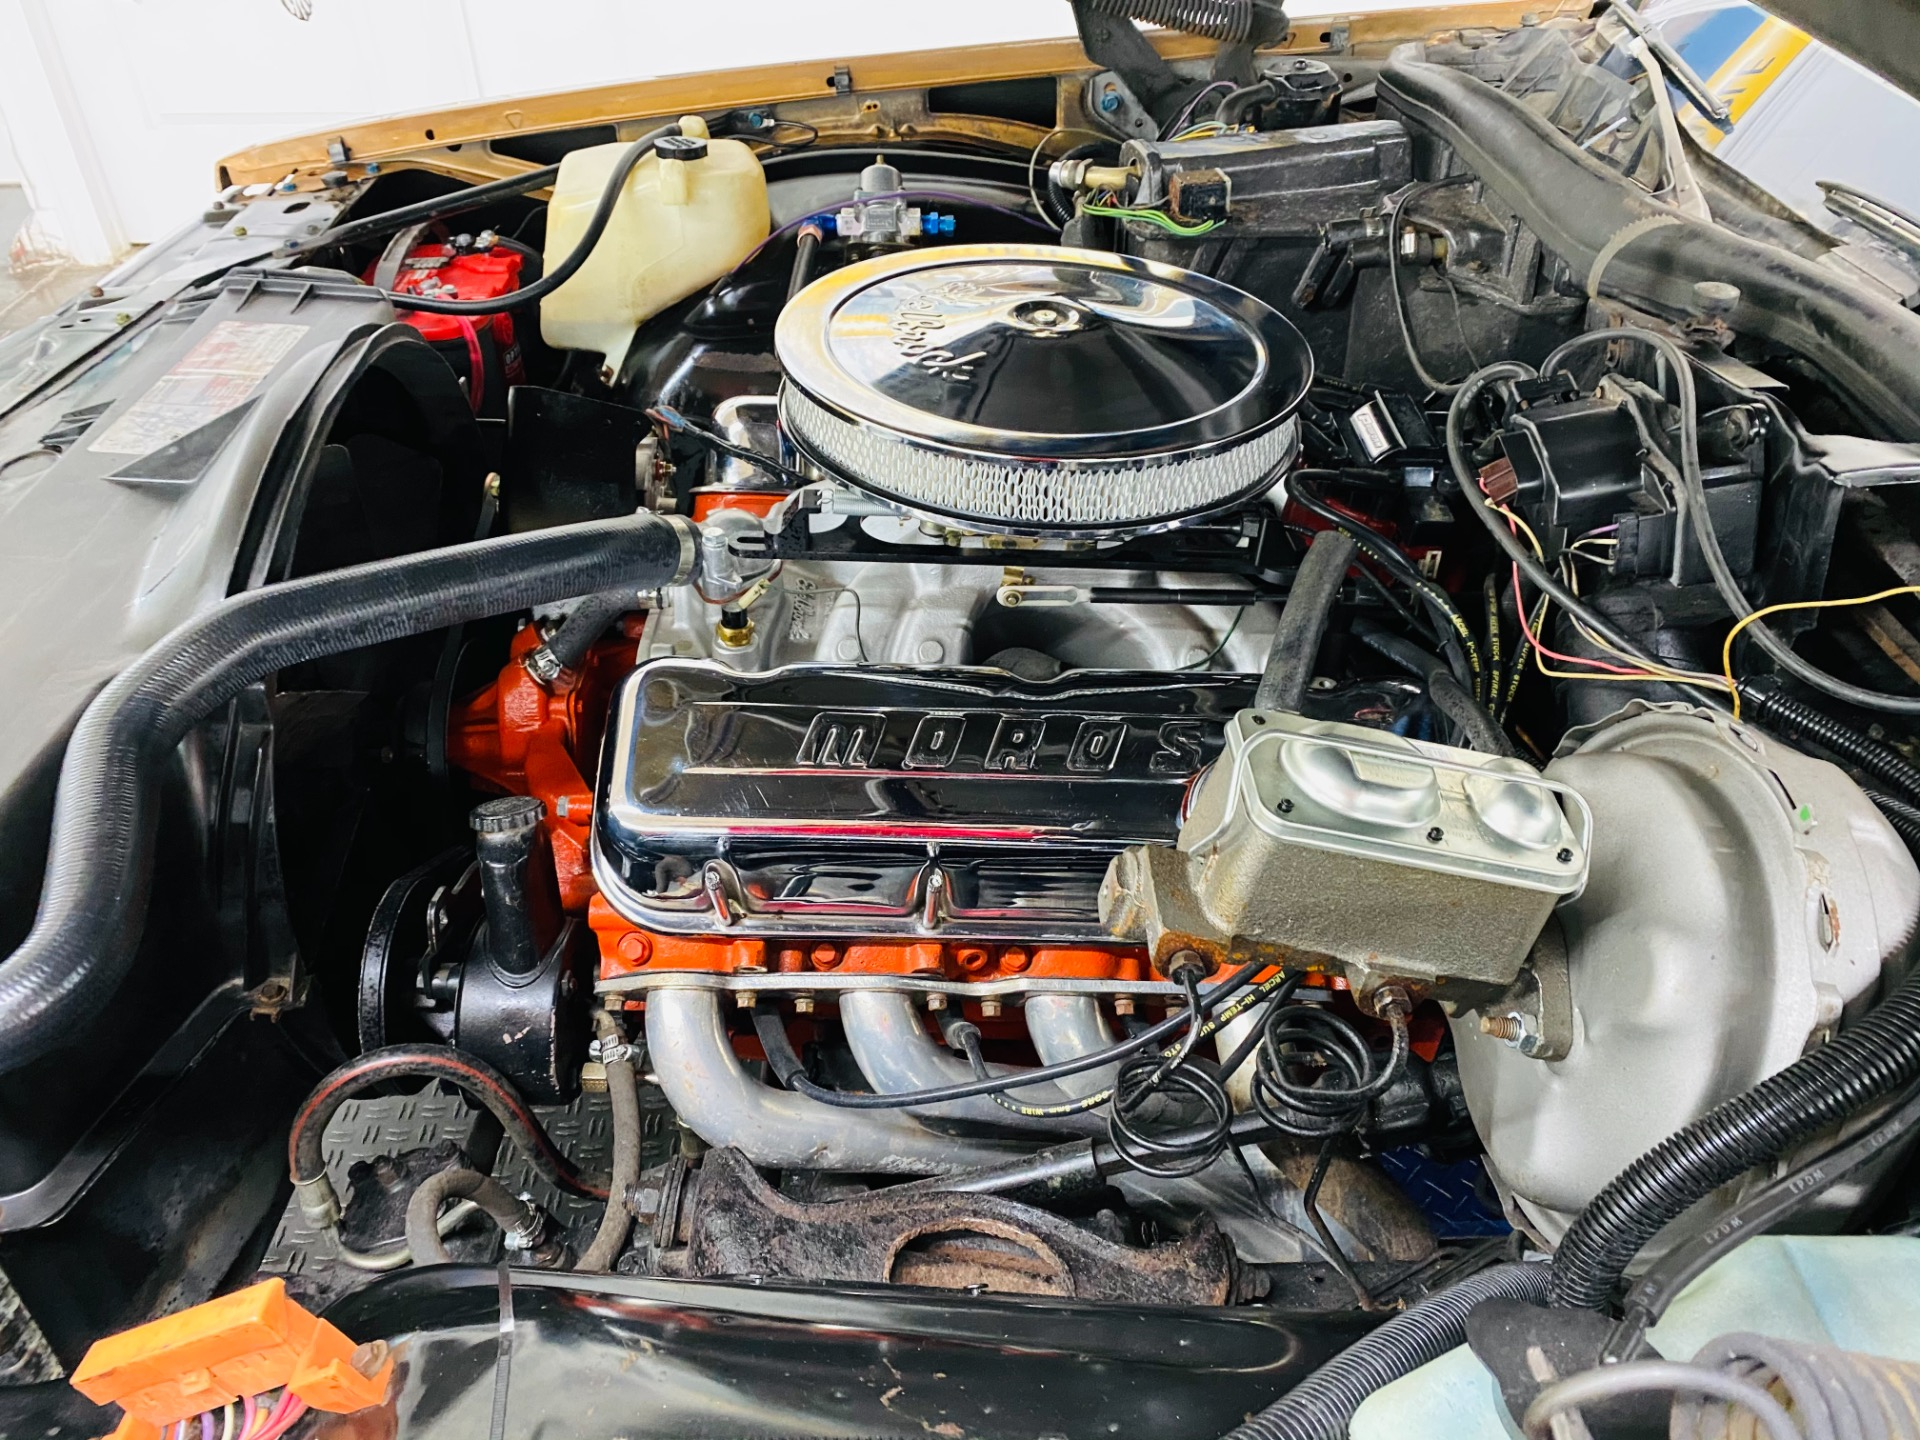 Used 1979 Pontiac Catalina - 468 BIG BLOCK RAT MOTOR - SUPER SLEEPER - RATALINA - | Mundelein, IL